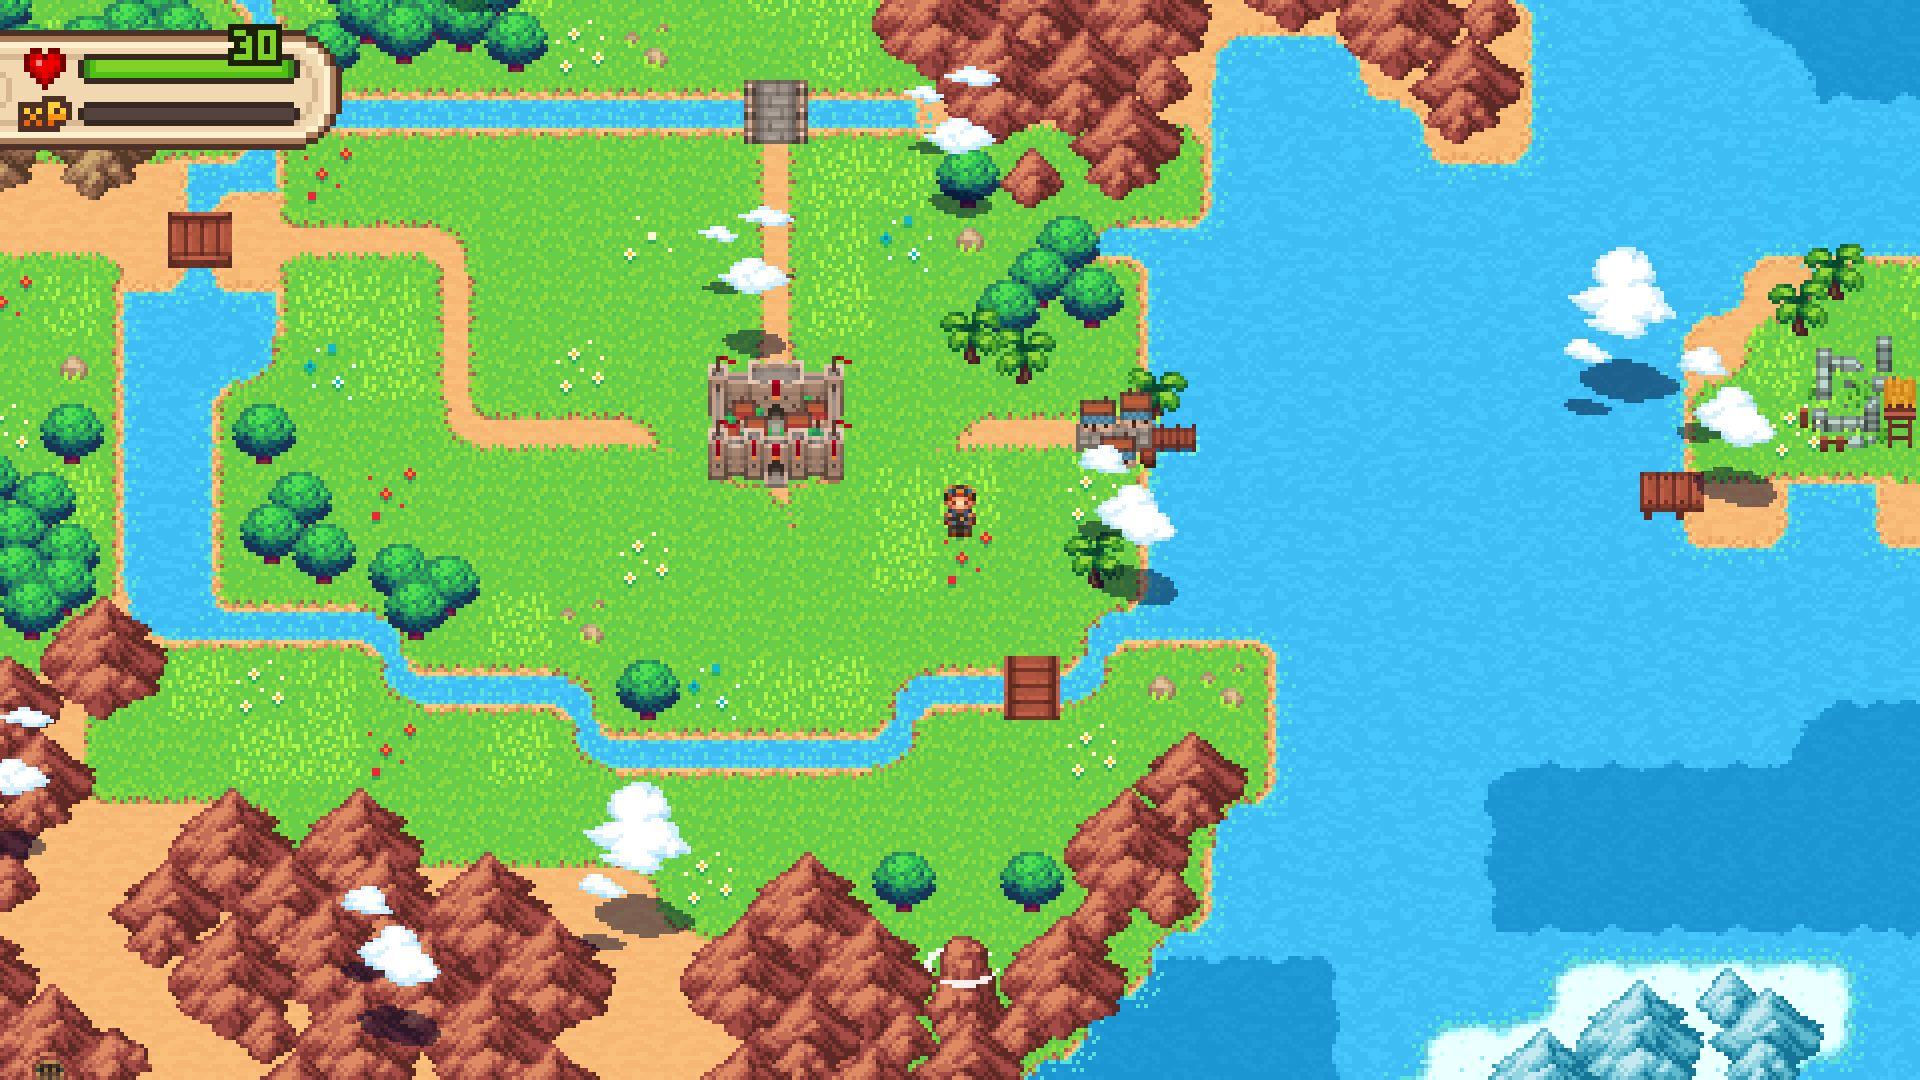 Screenshot from Evoland 2: A Slight Case of Spacetime Continuum Disorder (6/6)